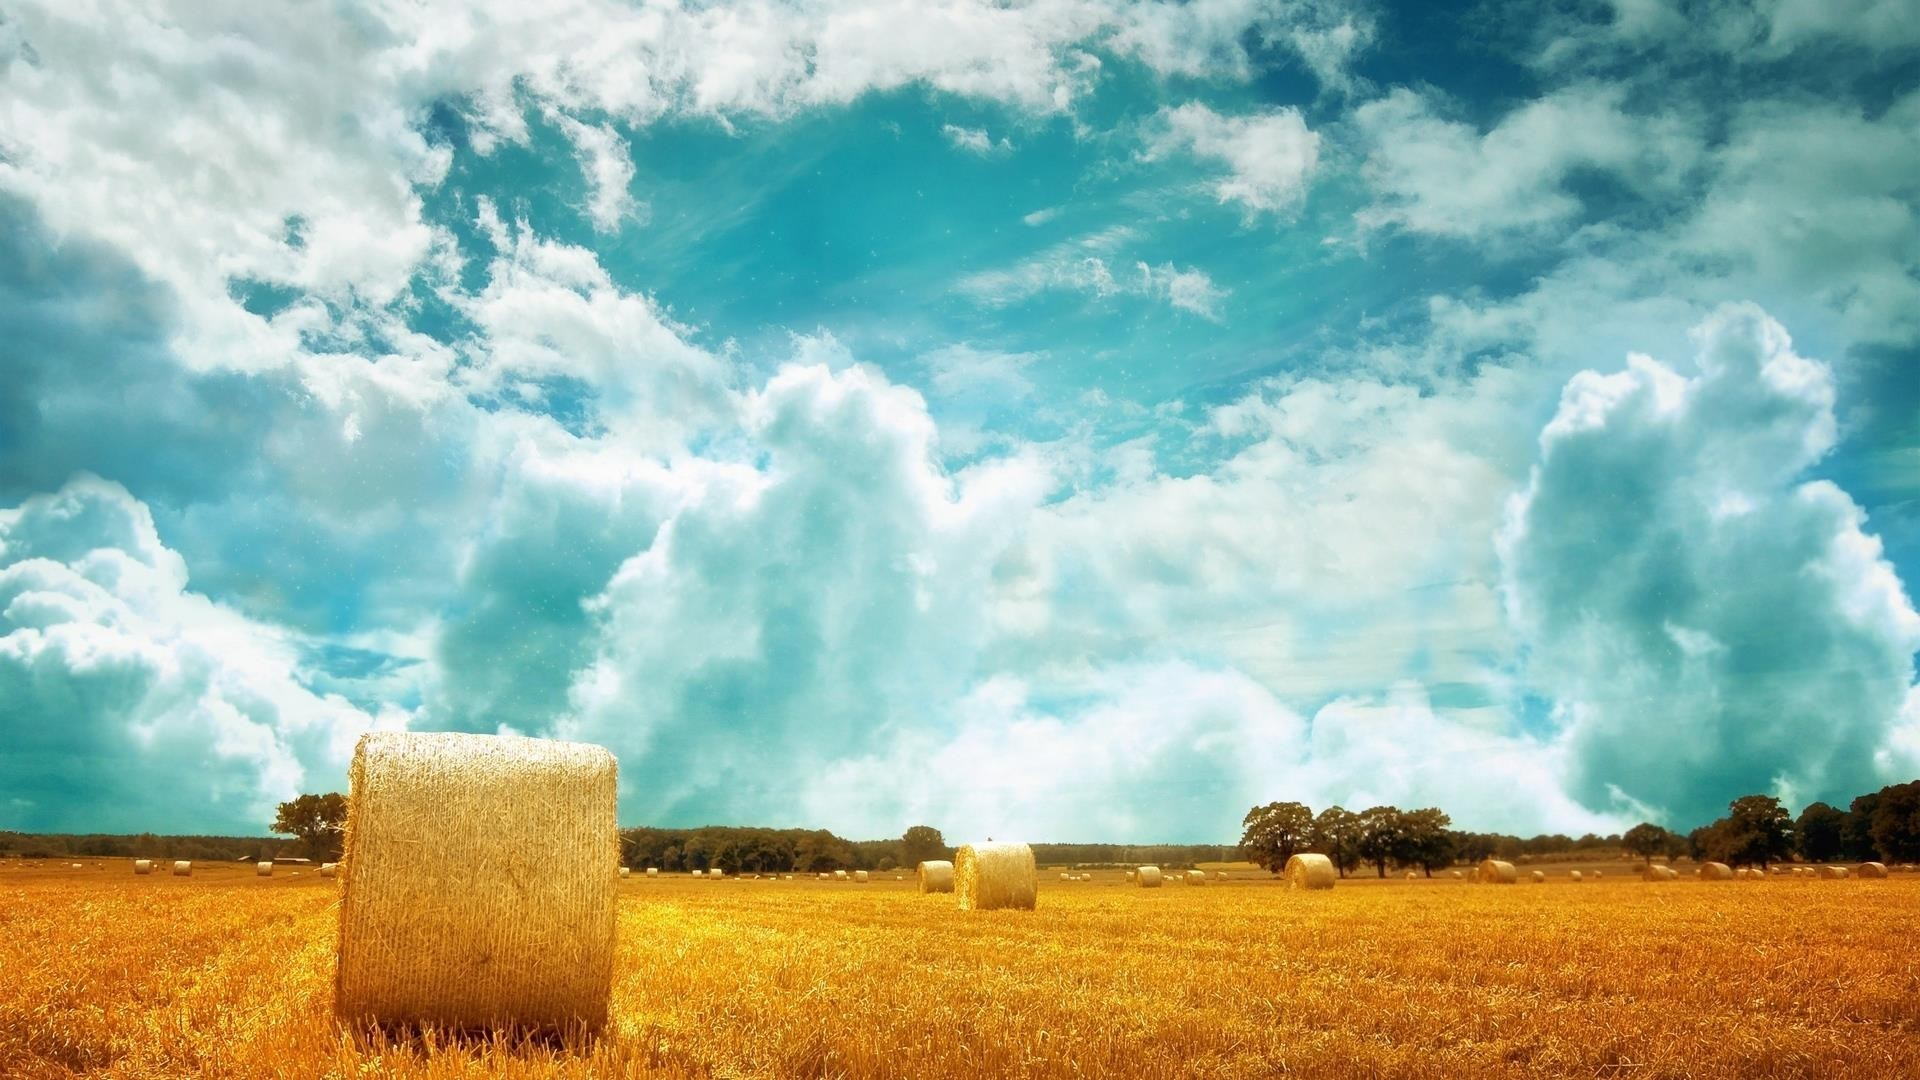 Farm Wallpapers HD images